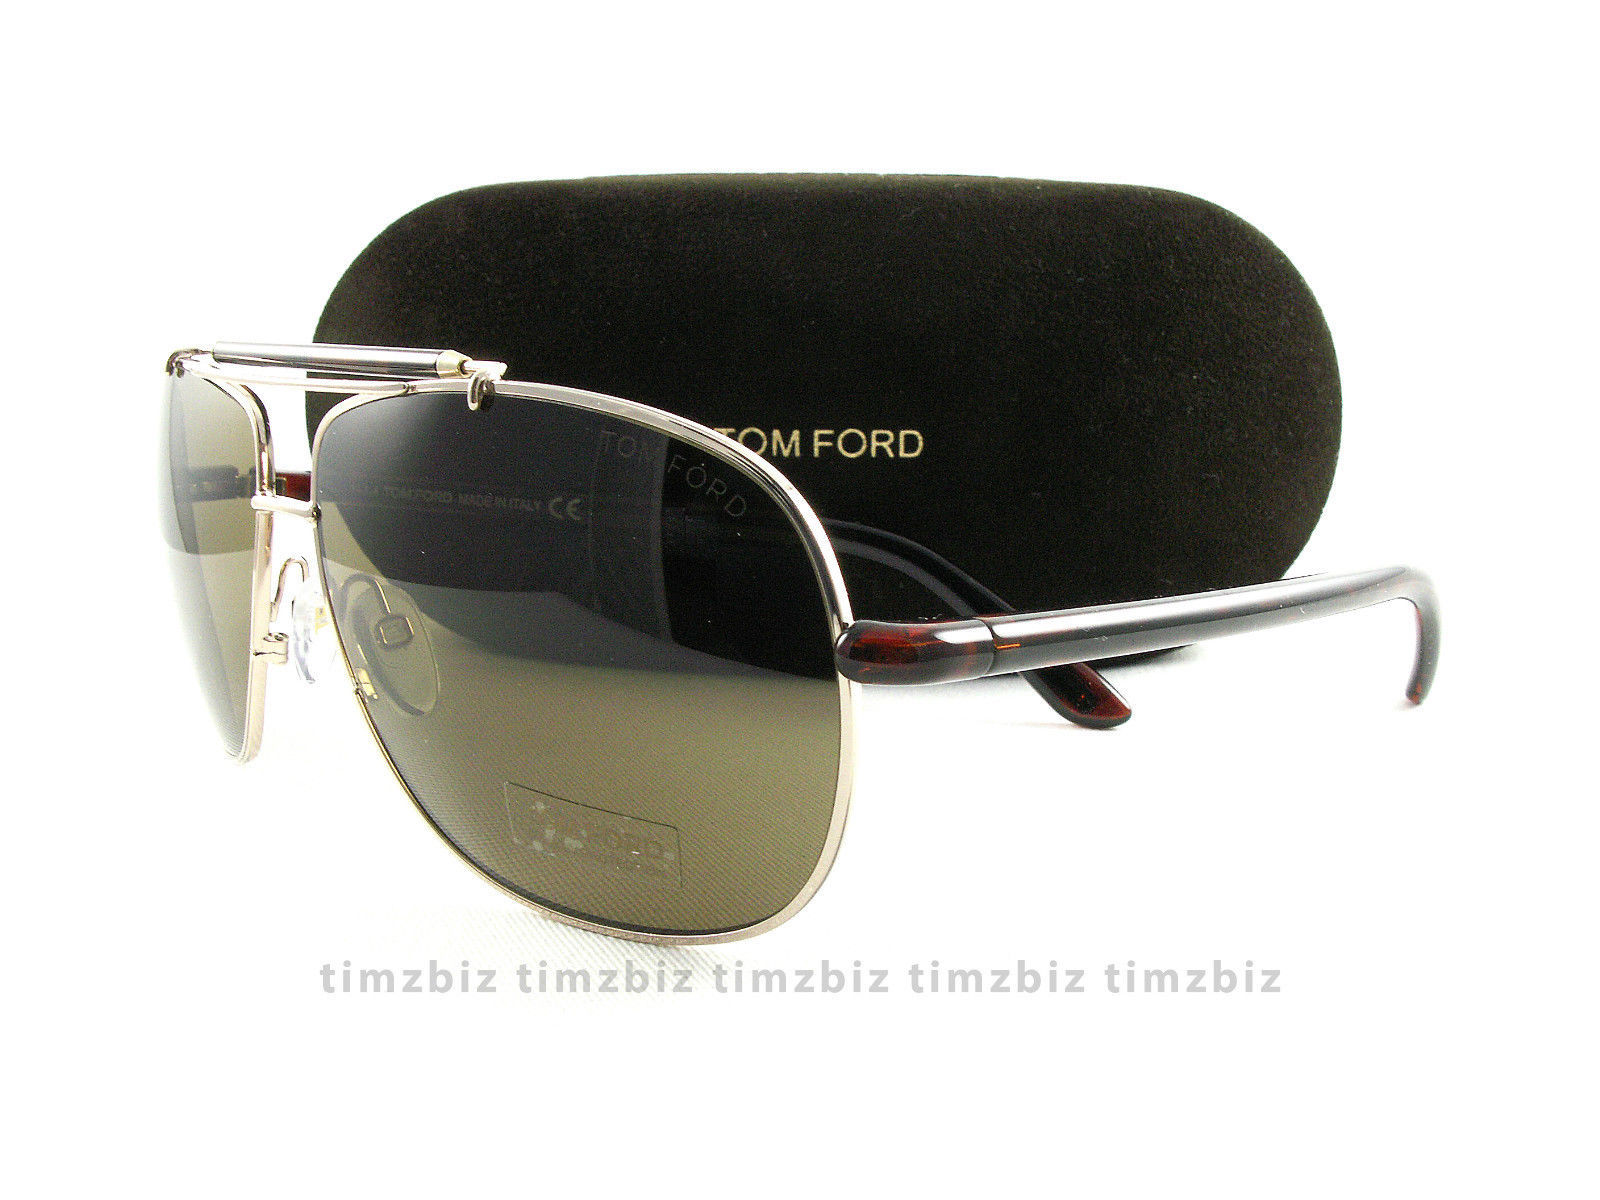 a541802377b Tom Ford Aviator Sunglasses India. Cost Of Tom Ford Sunglasses In India